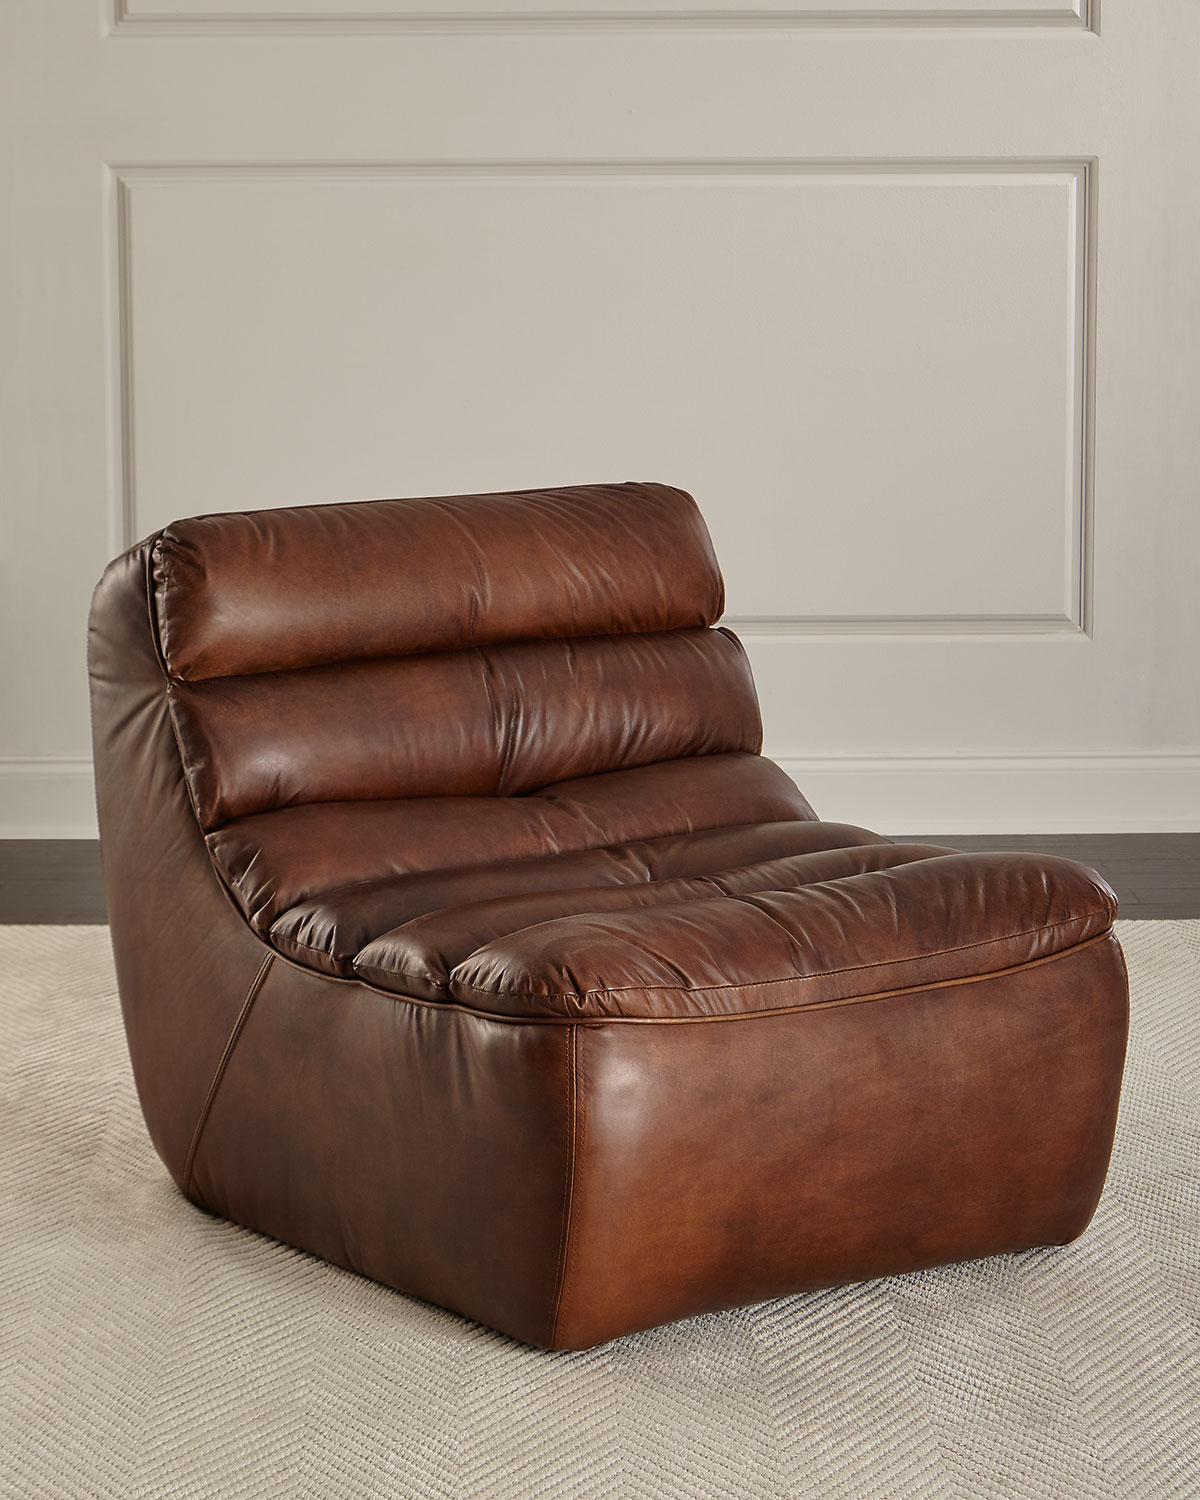 Leather Lounge Renee Leather Lounge Chair